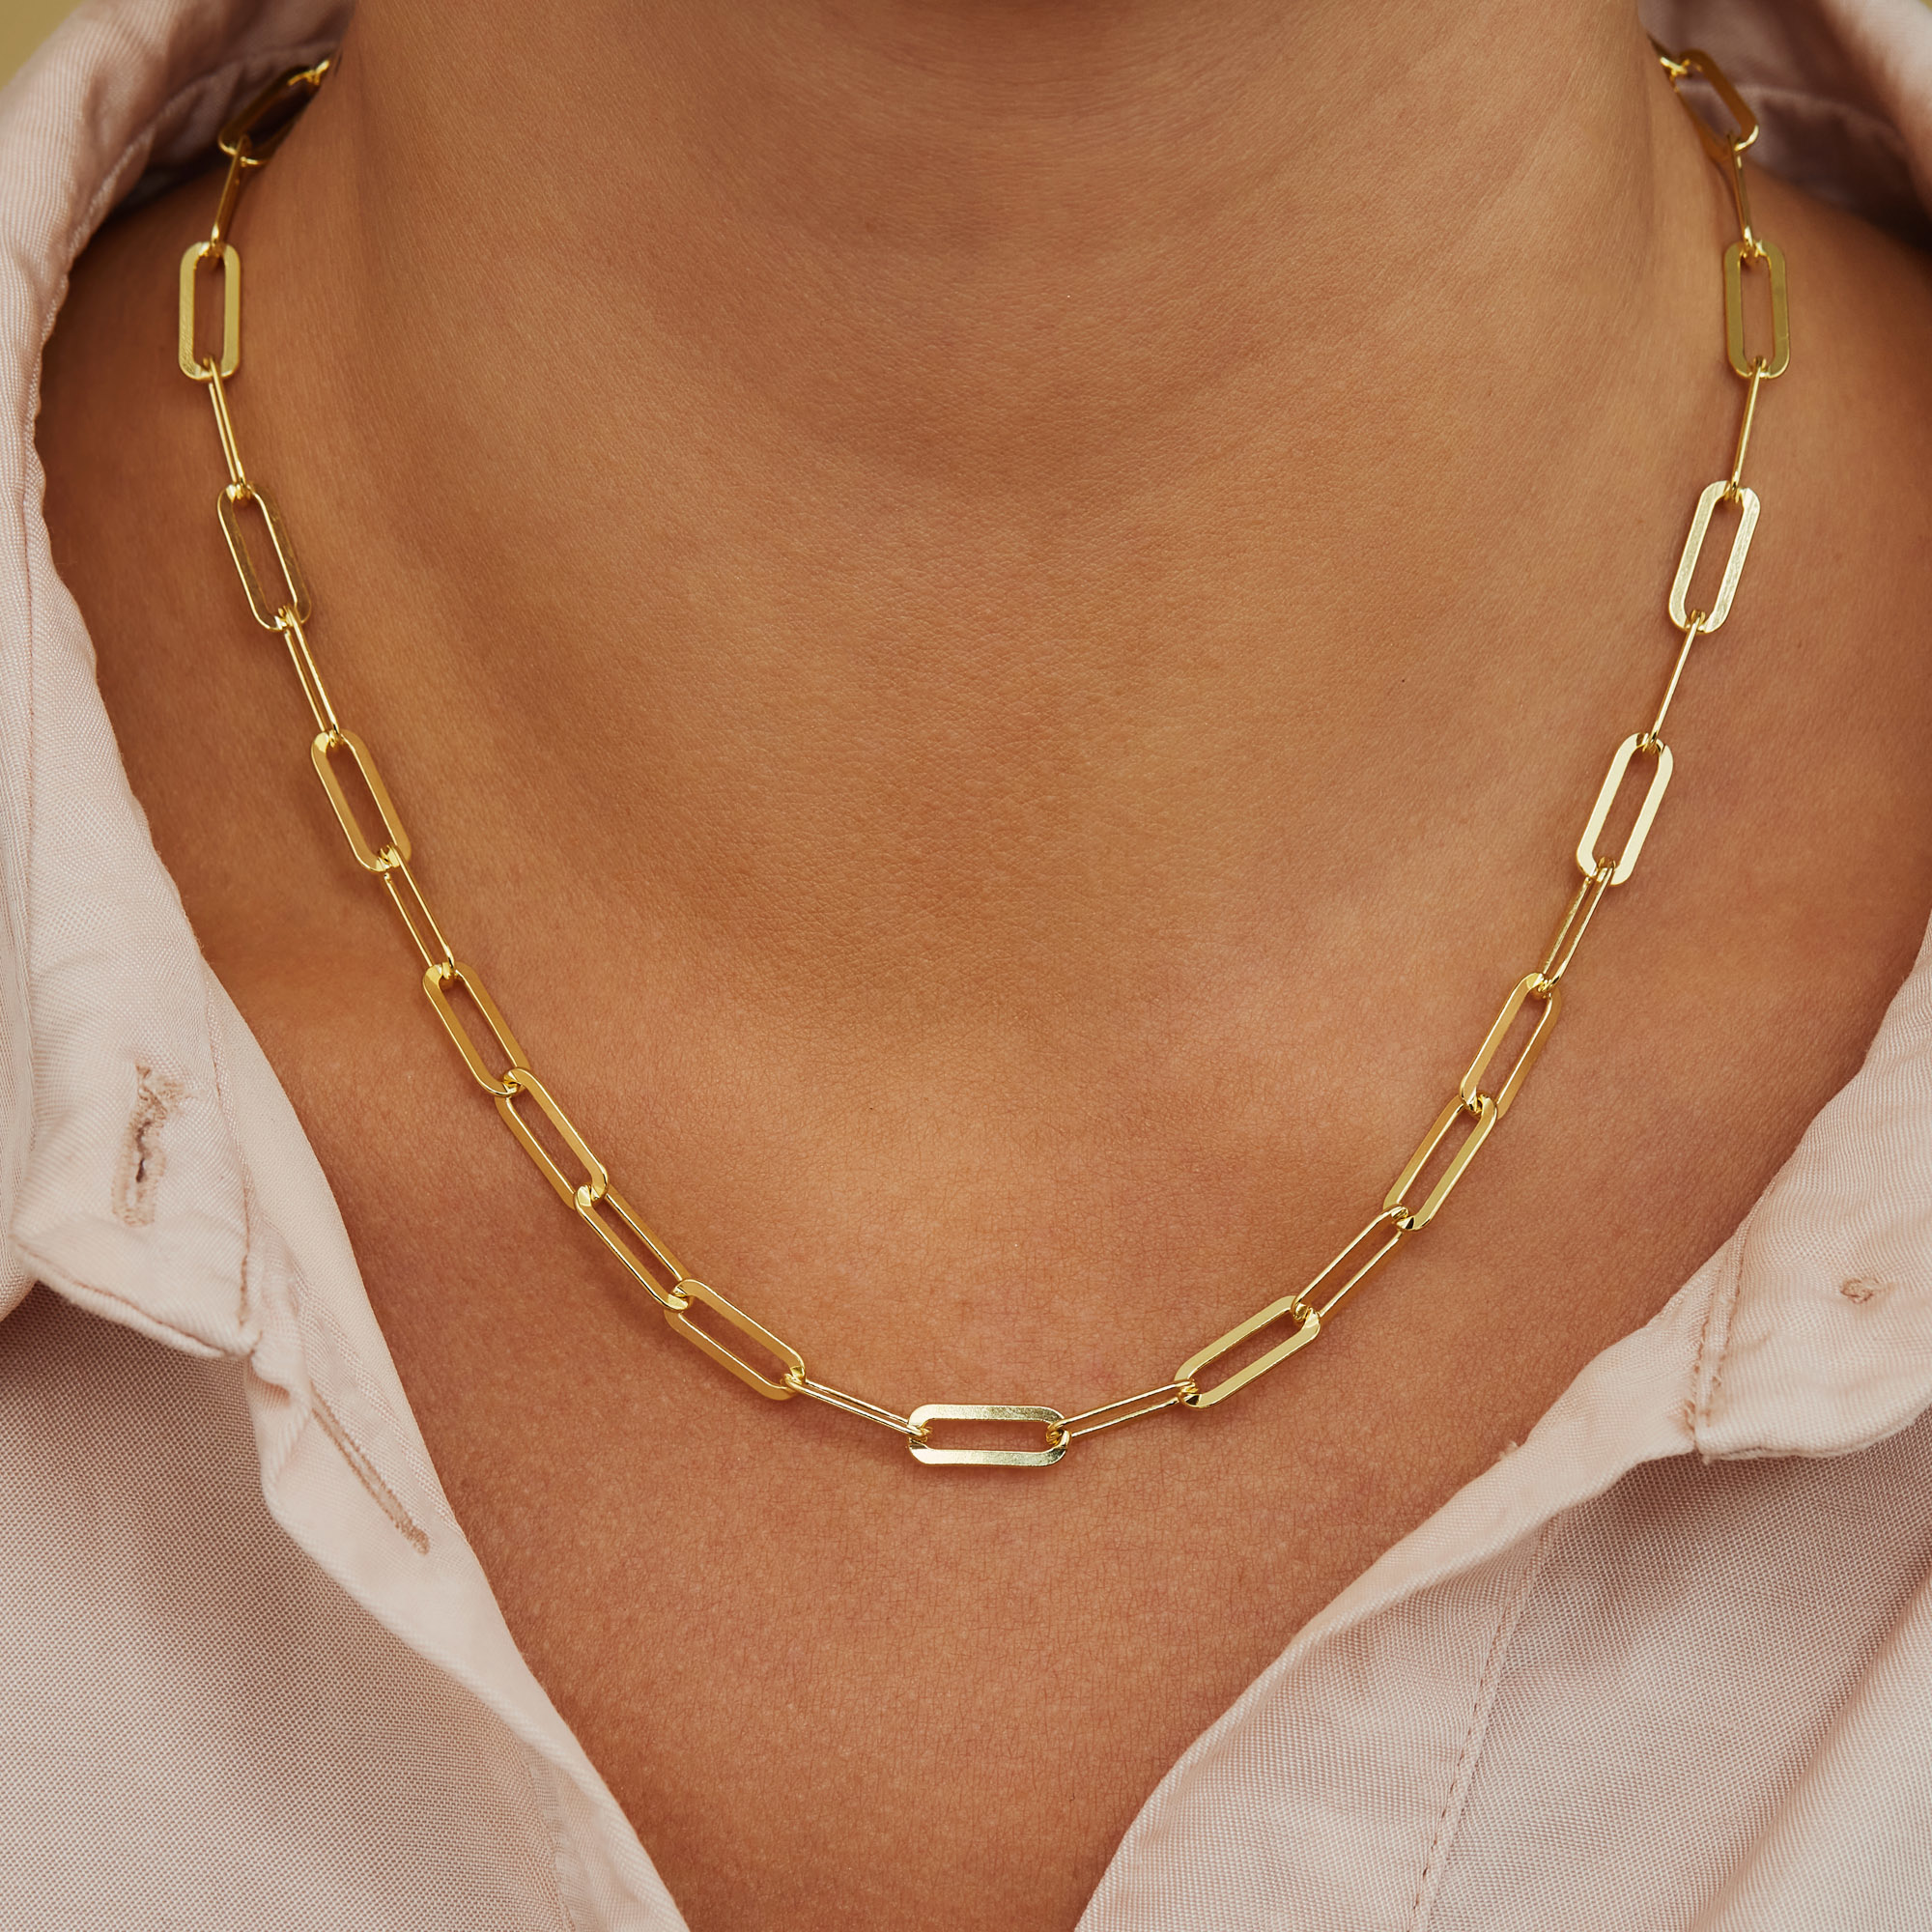 Selected Jewels Emma Jolie 925 sterling silver gold colored necklace